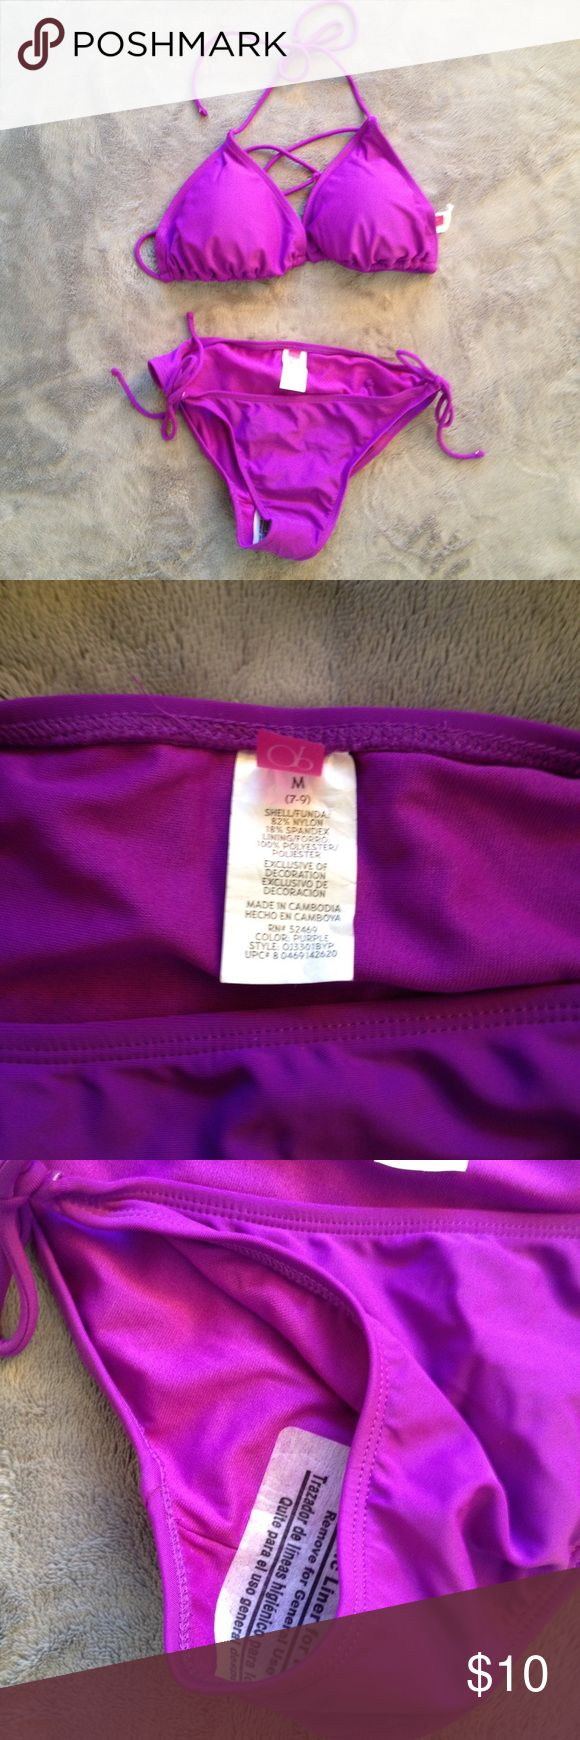 OP purple bikini set - NWOT OP purple bikini set - brand new and never worn but tags were removed. Set for $10 or individual pieces at $5 each. Medium bottom & XL top (15-17 teens or medium in women's). OP Swim Bikinis